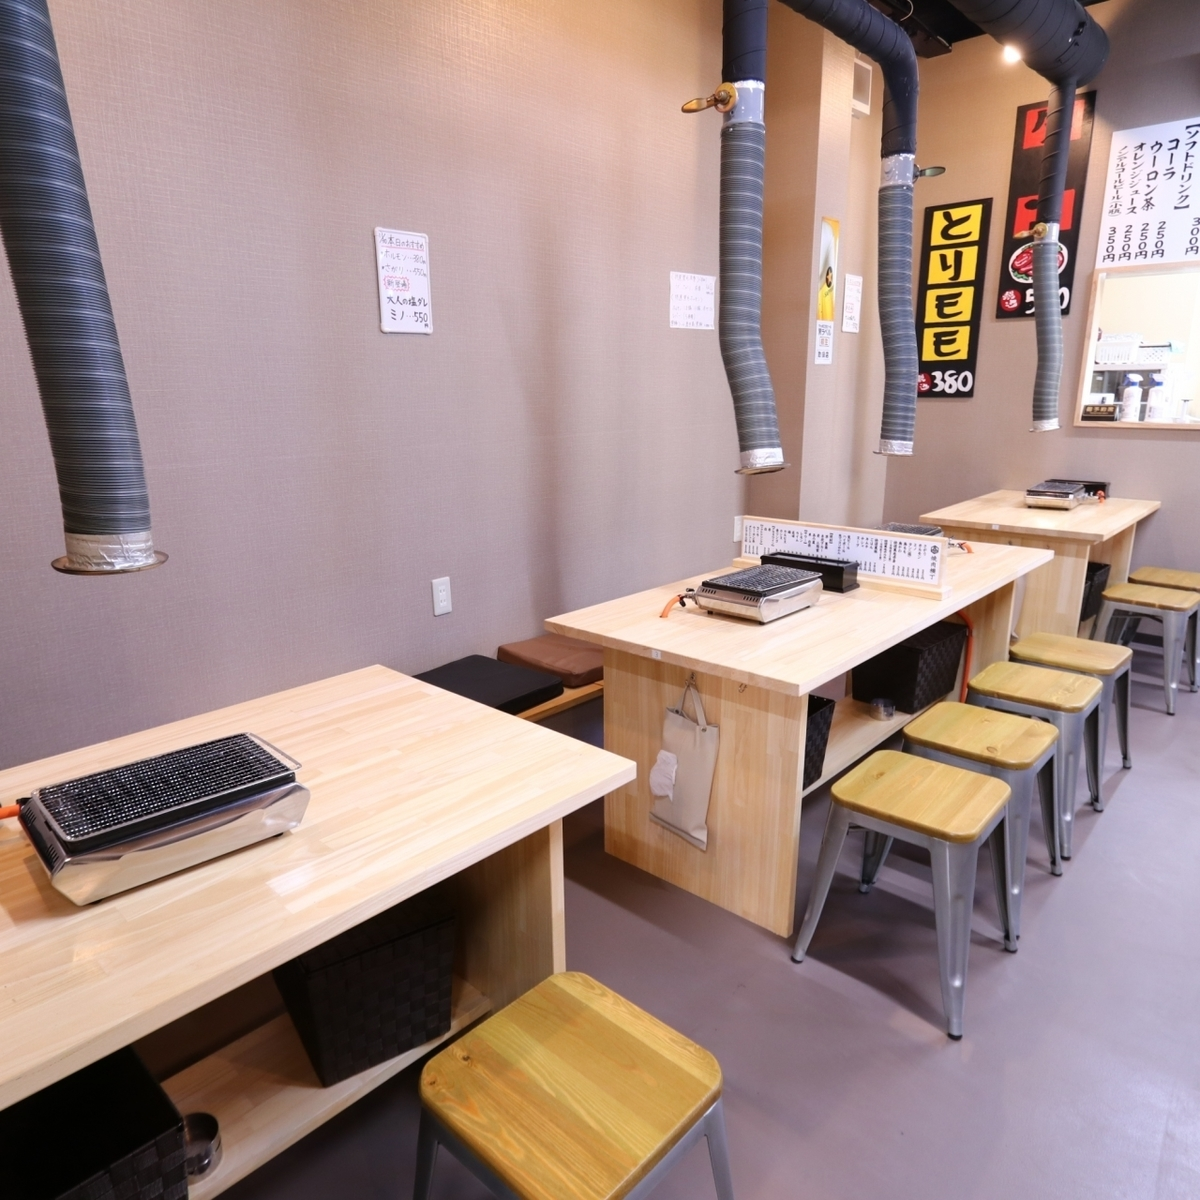 It is seats for sofas and chairs with OK for up to 8 people.We will prepare according to the number of people.You can enjoy Yakiniku party in every scene.Recommended for small banquet / welcome reception!